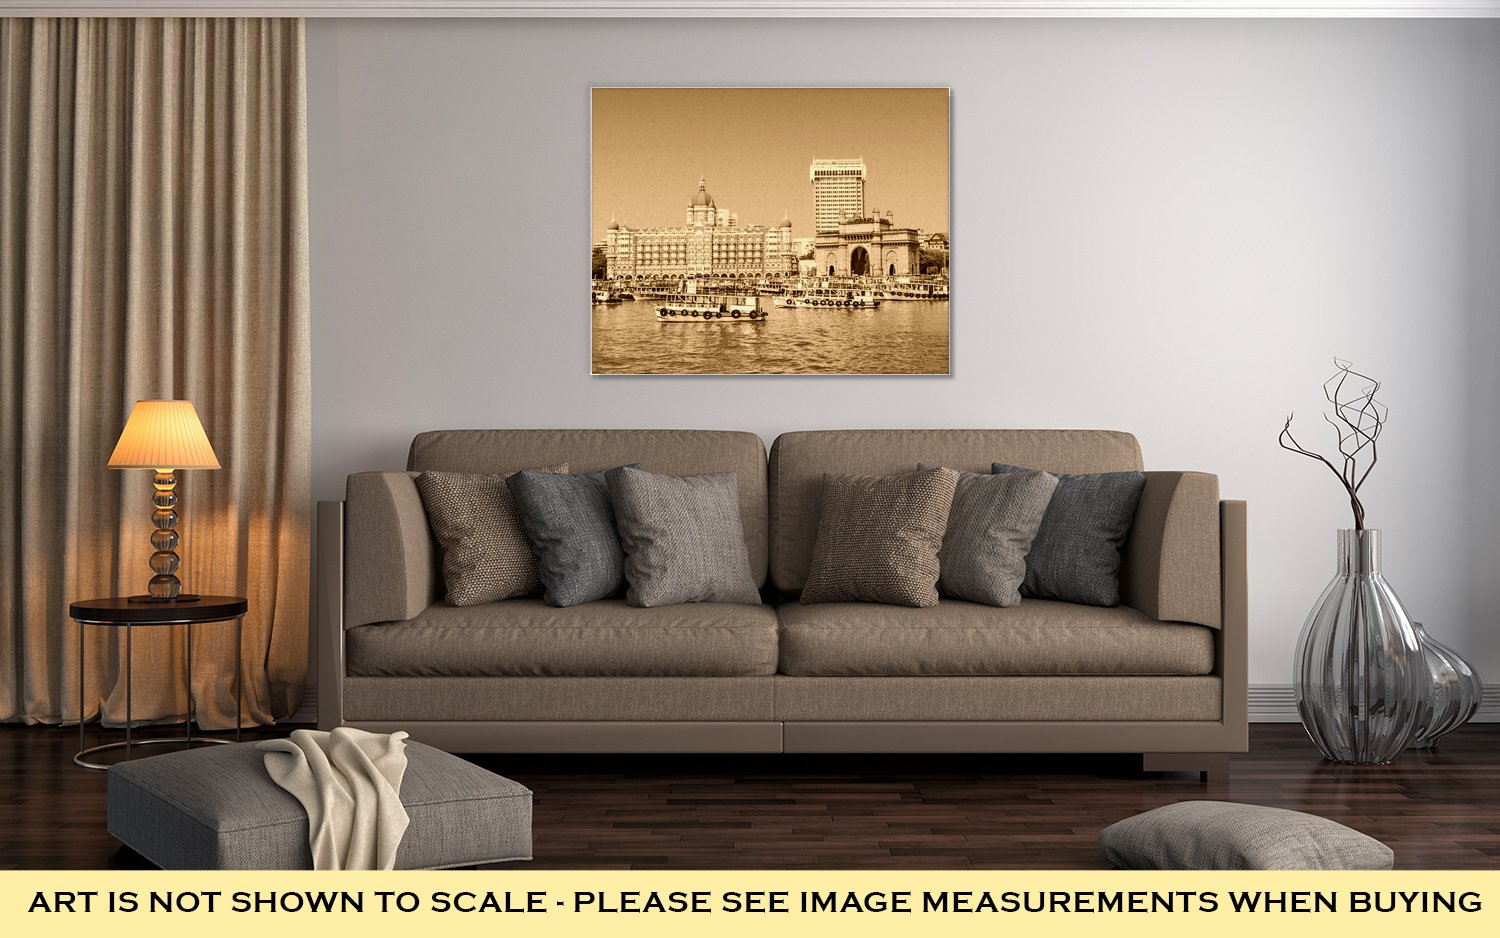 Ashley Canvas Taj Mahal Hotel And Gateway Of India, Home Office, Ready to Hang, Sepia 20x25, AG5933896